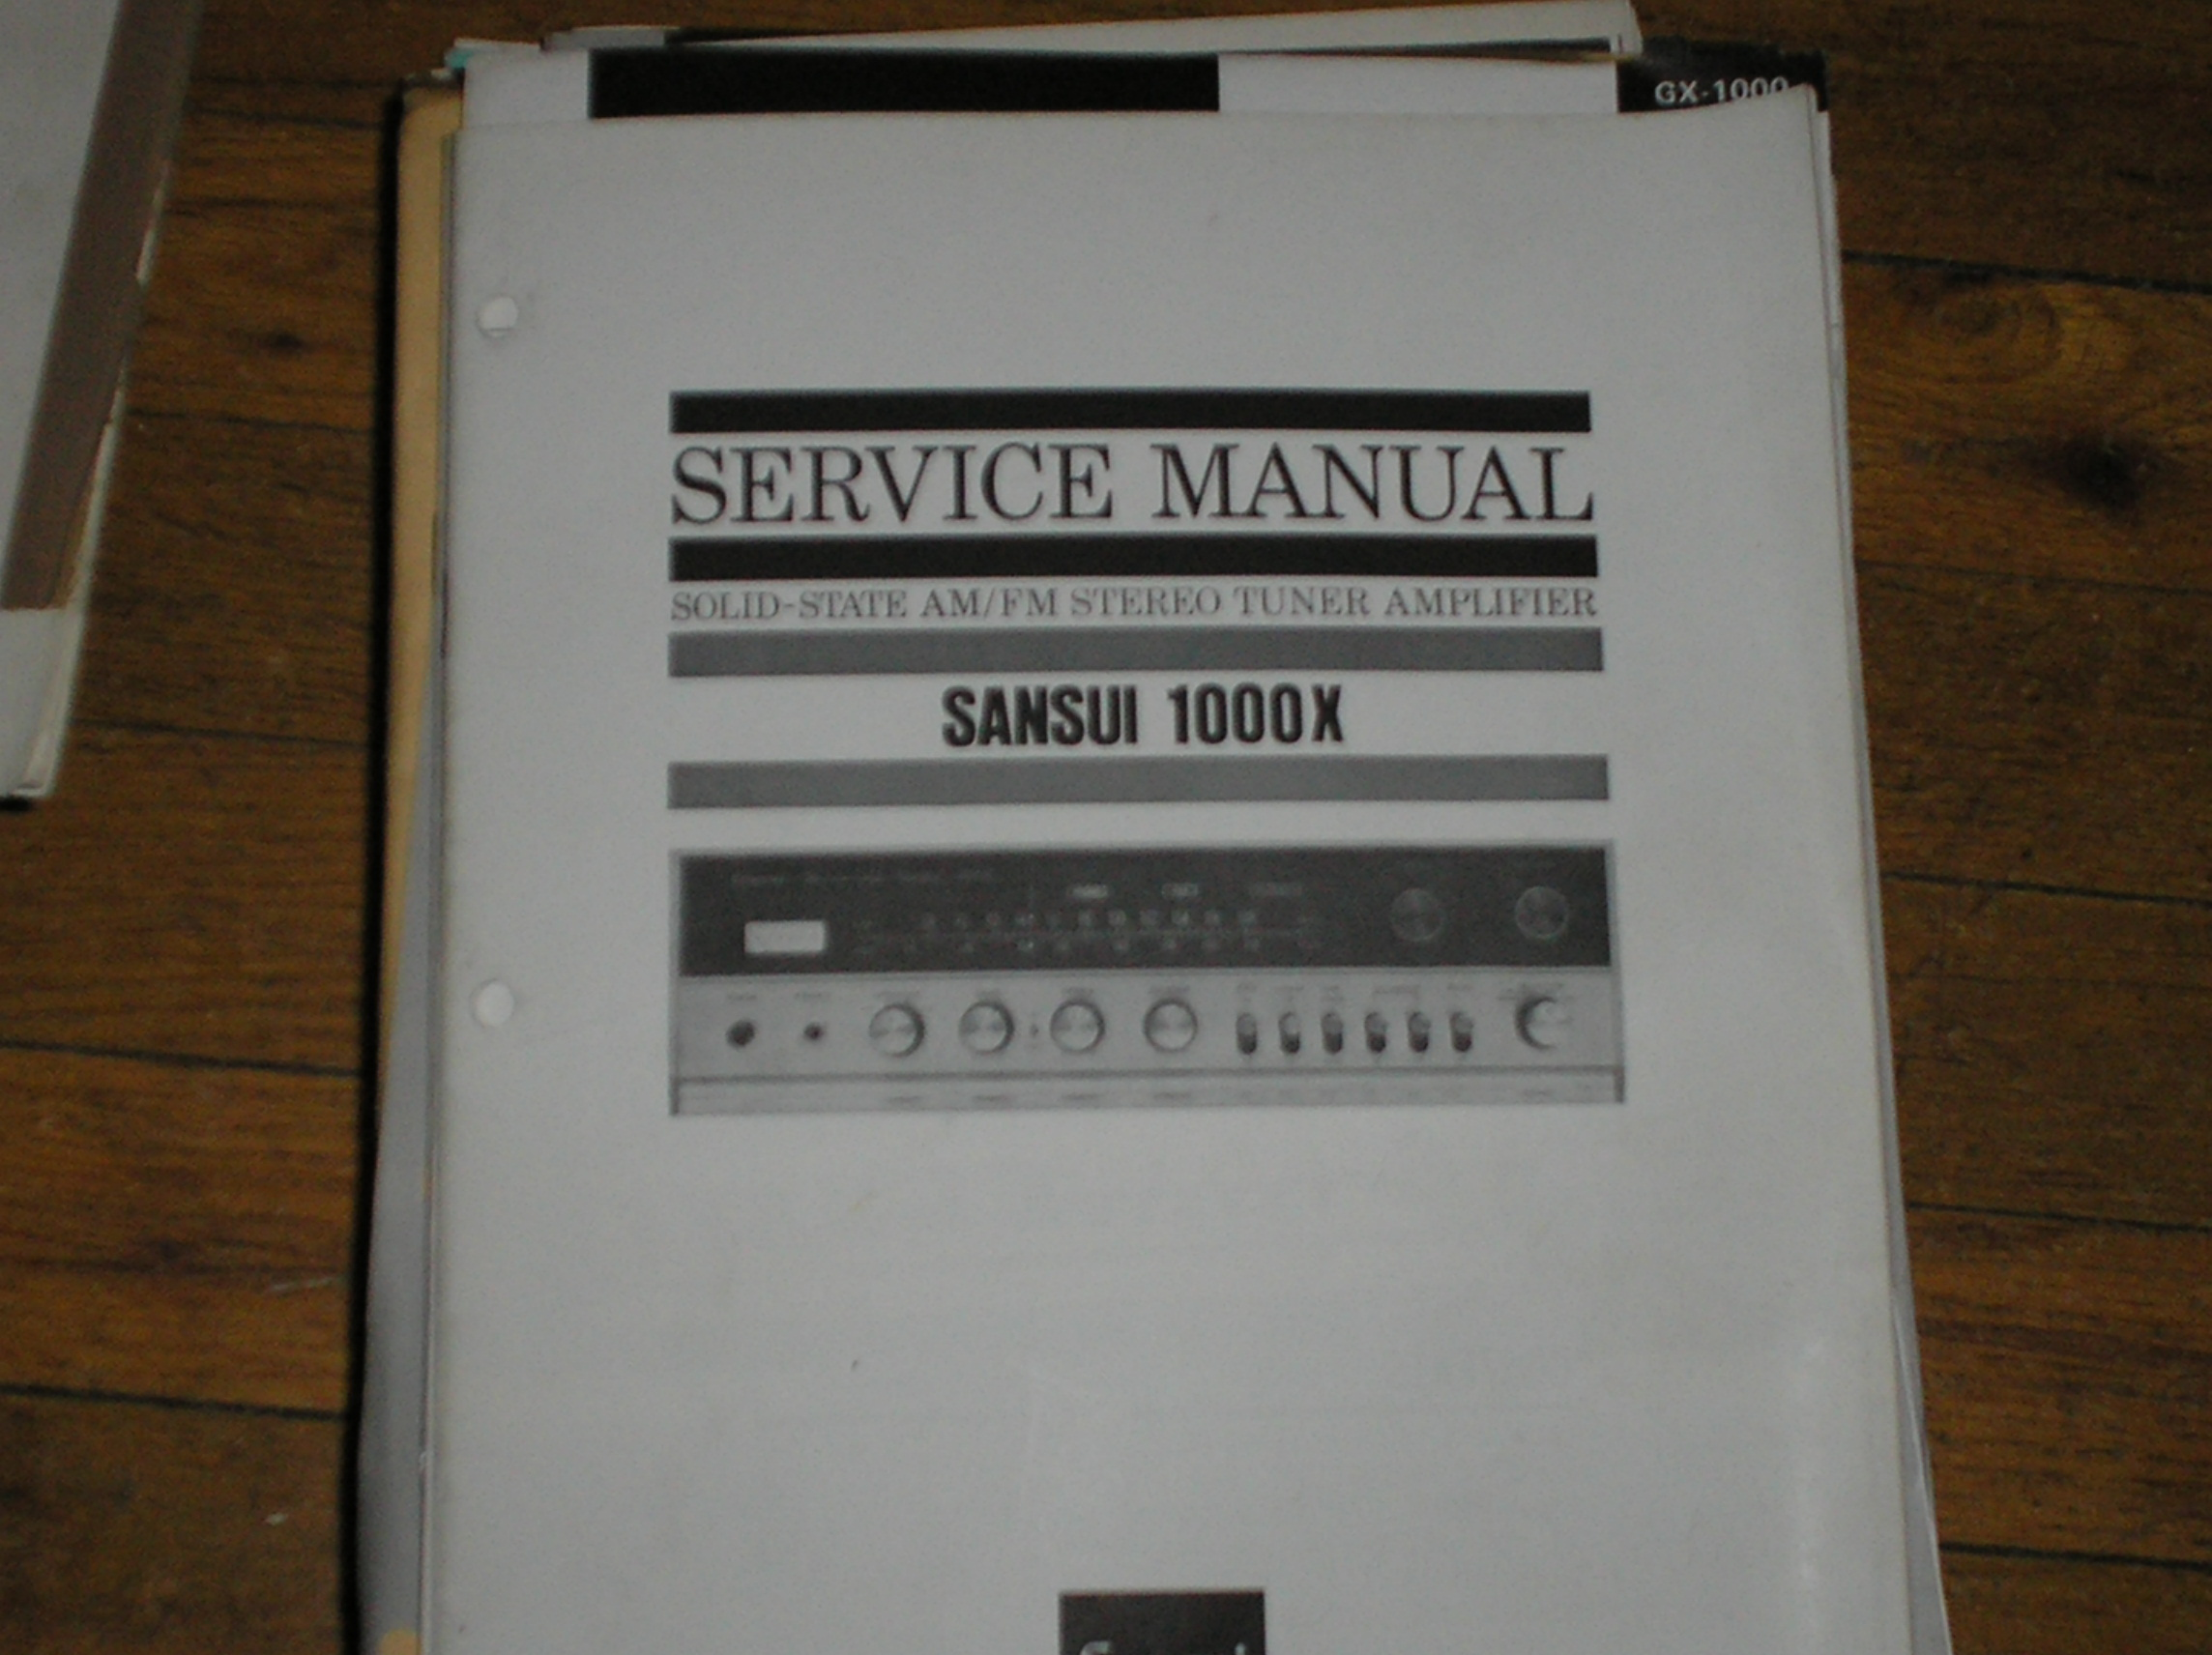 1000X Tuner Amplifier Service Manual